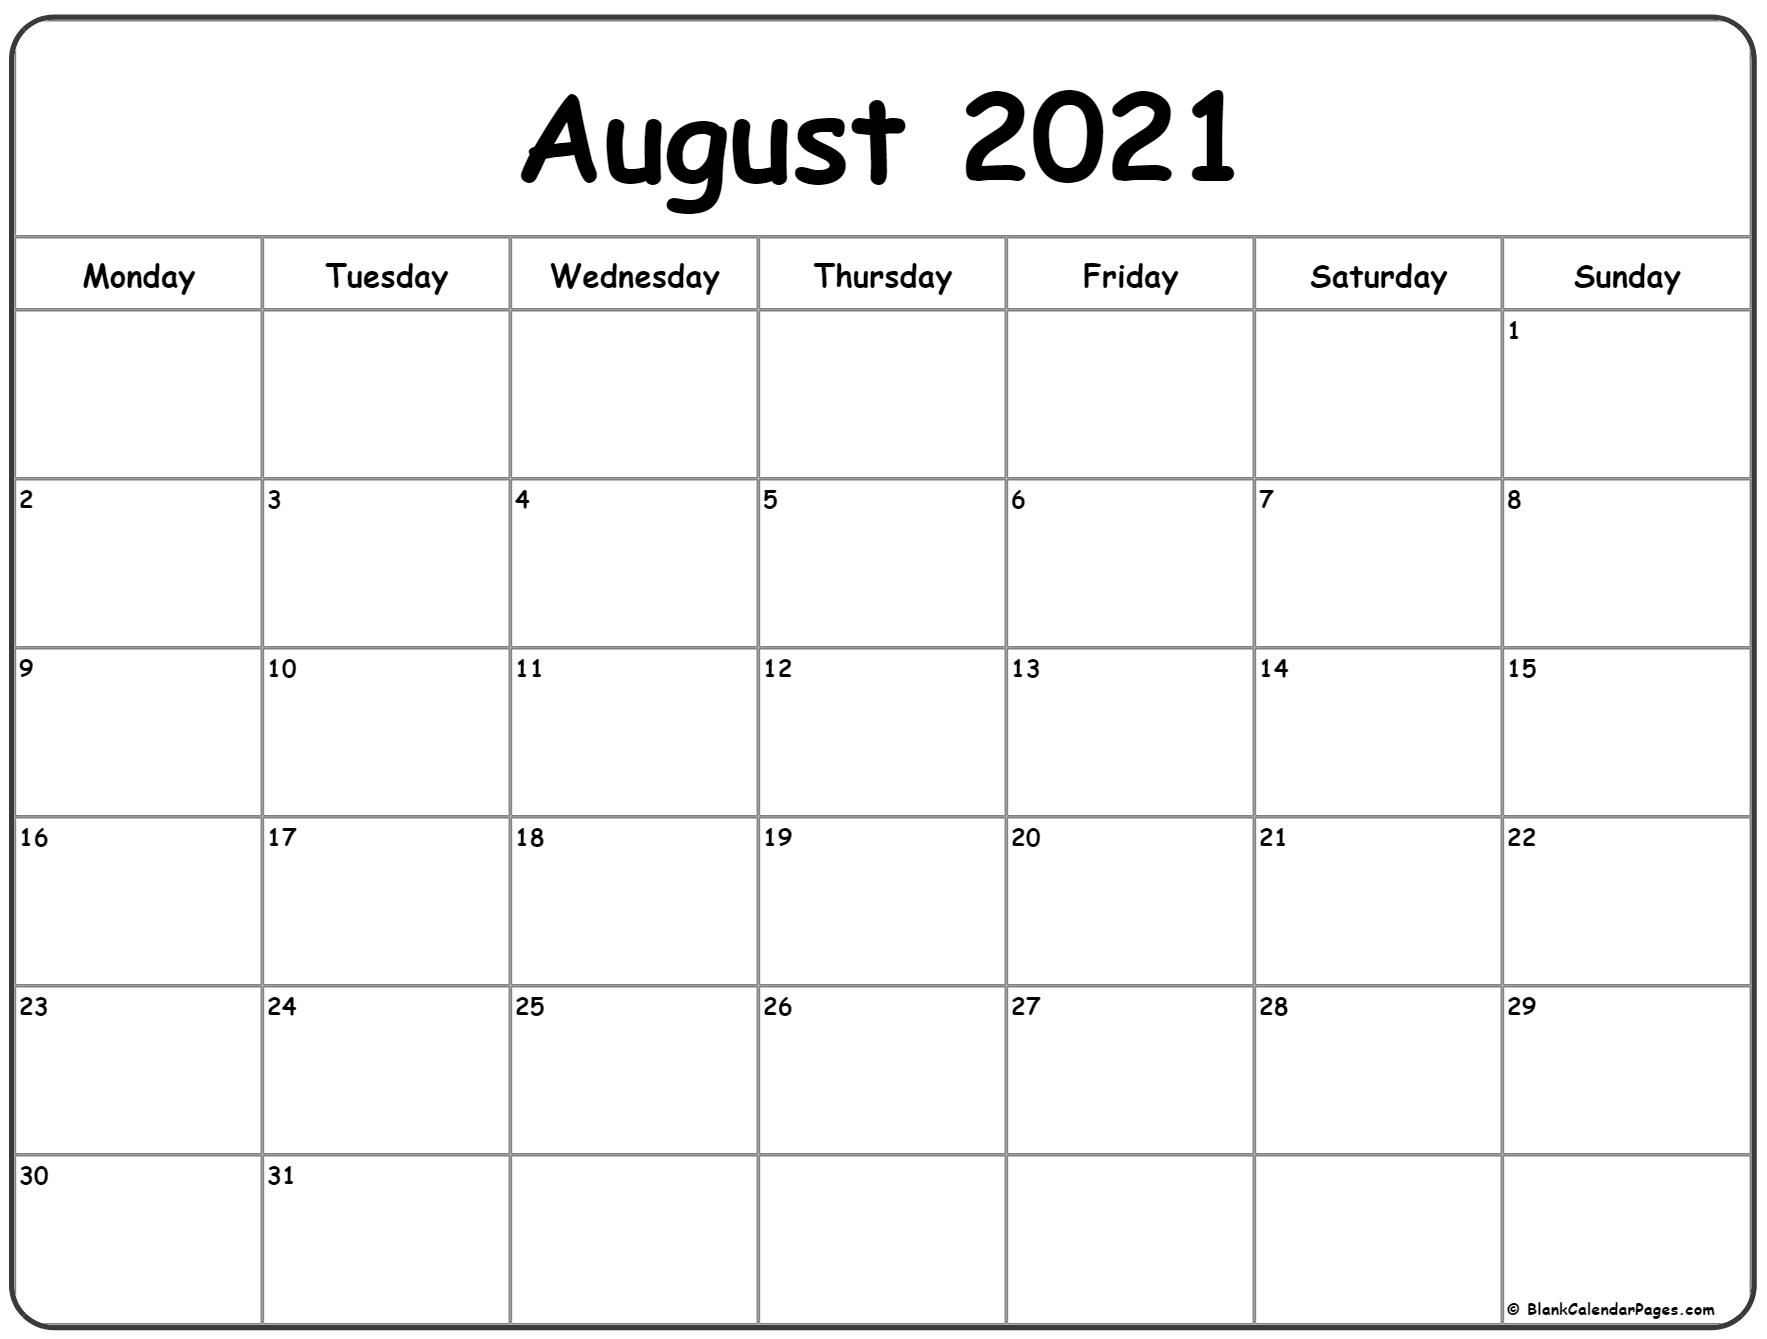 Pick Calander Template Monday-Sunday August 2021